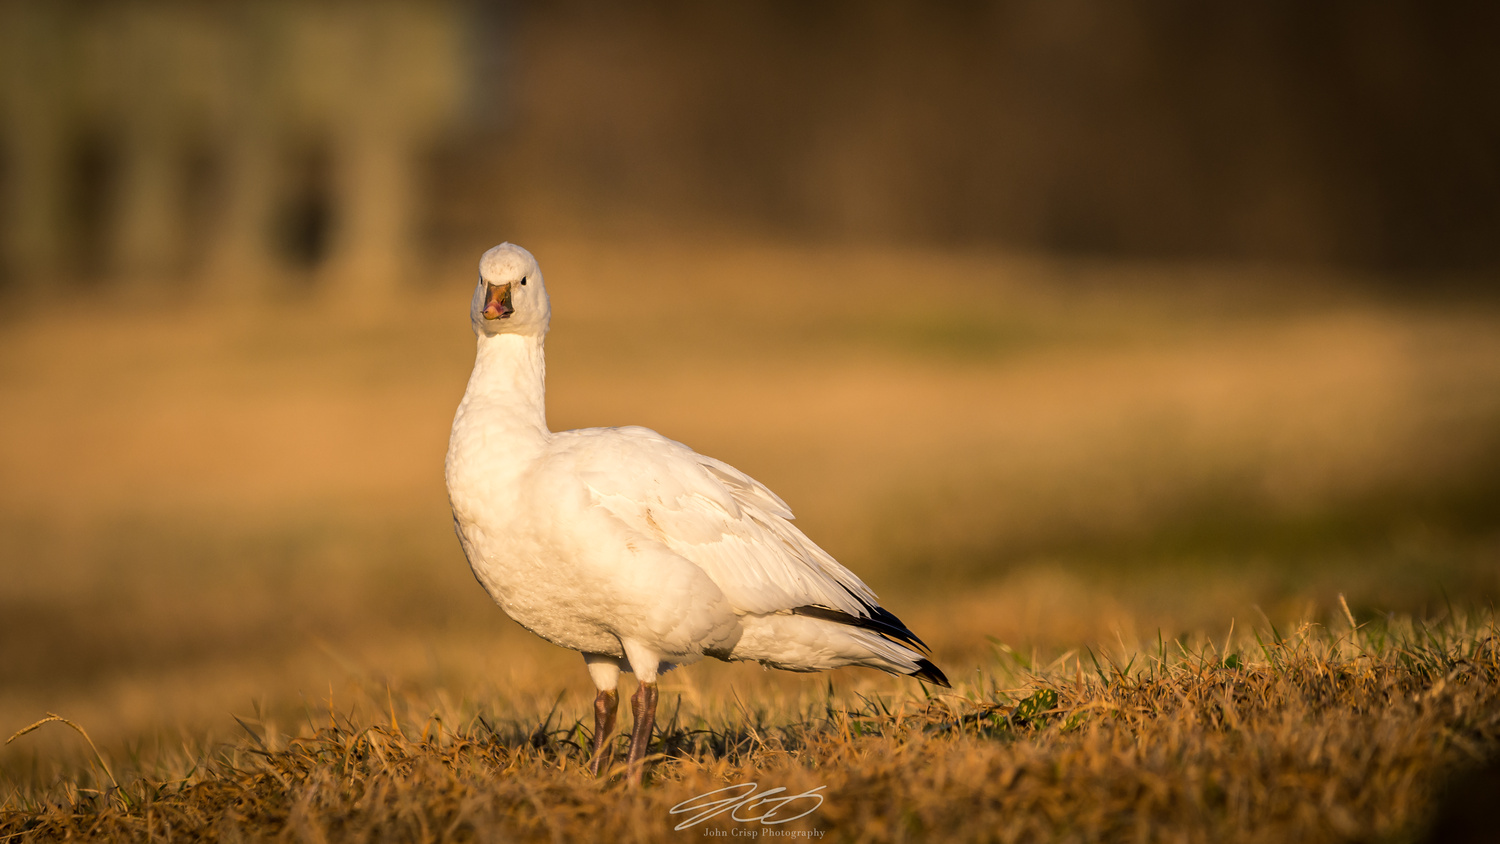 Texas Snow Goose by John Crisp